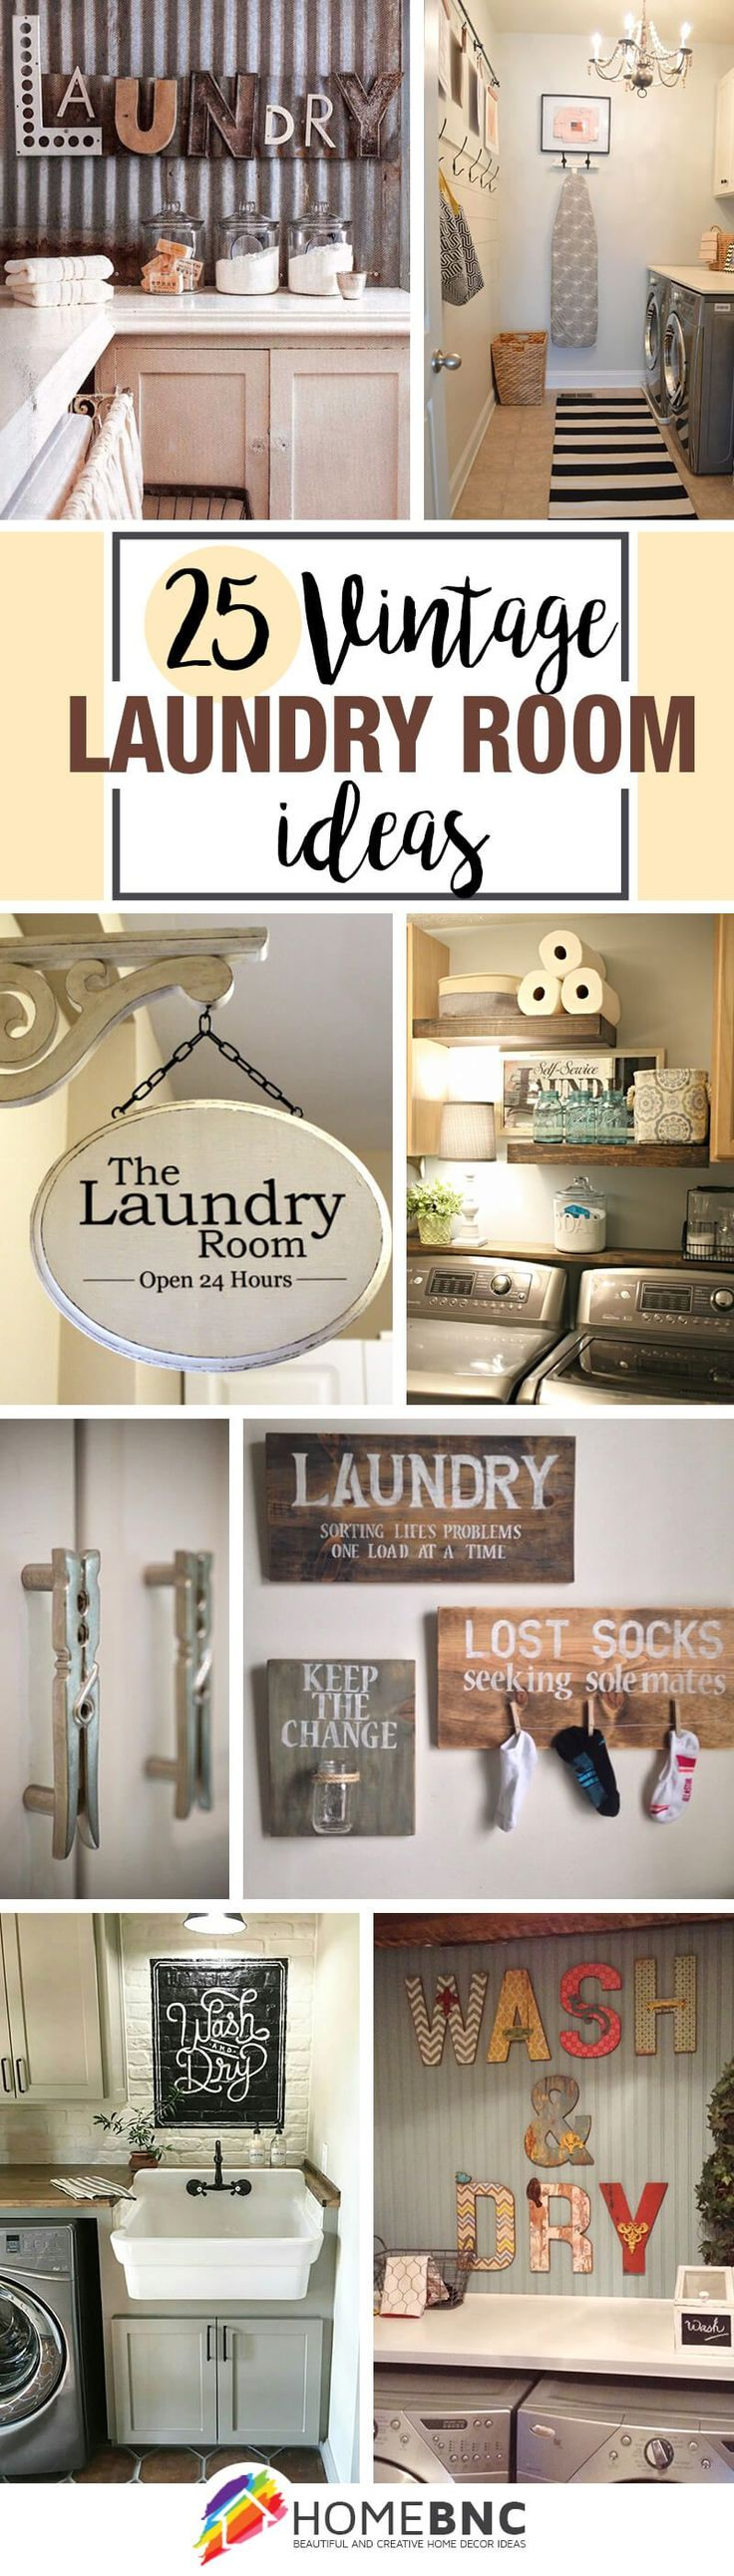 Vintage Laundry Room Decor Designs  - Visit my Store @ https://www.spreesy.com/emmaperry